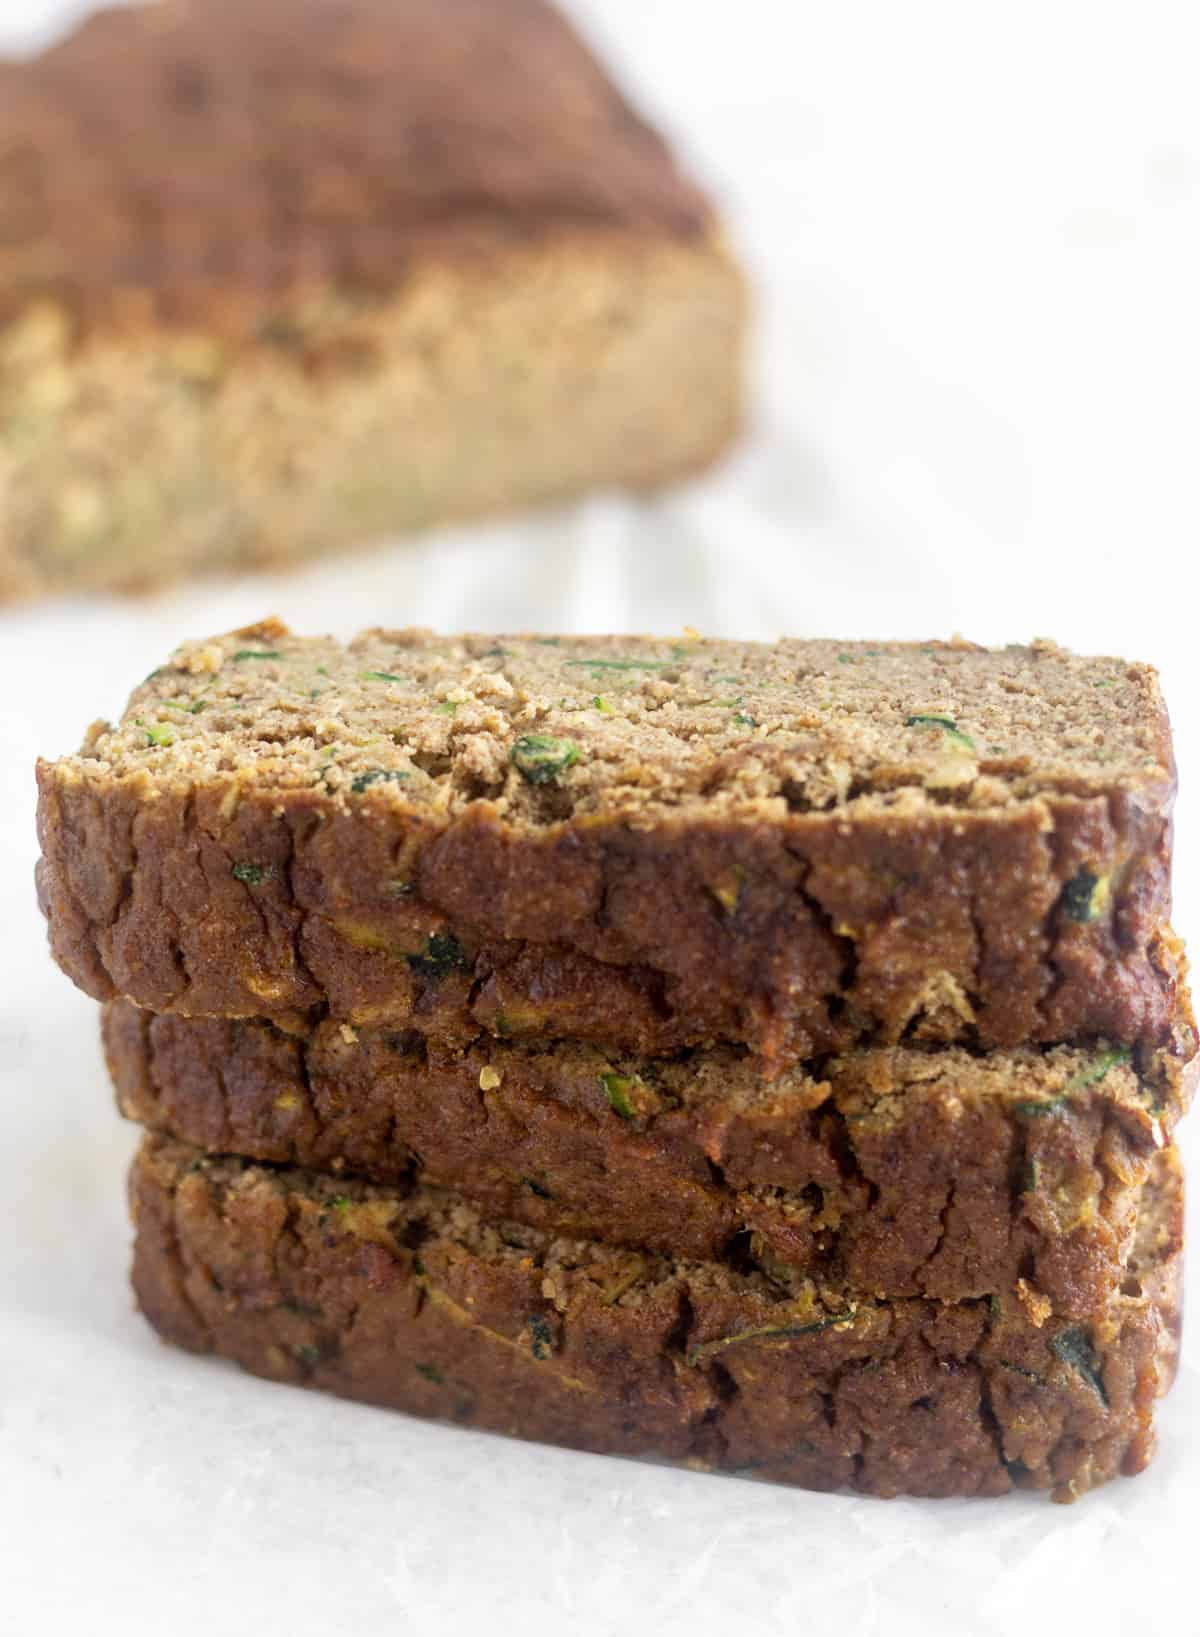 Three pieces of Zucchini Banana Bread stacked on top of each other with the rest of the load behind it